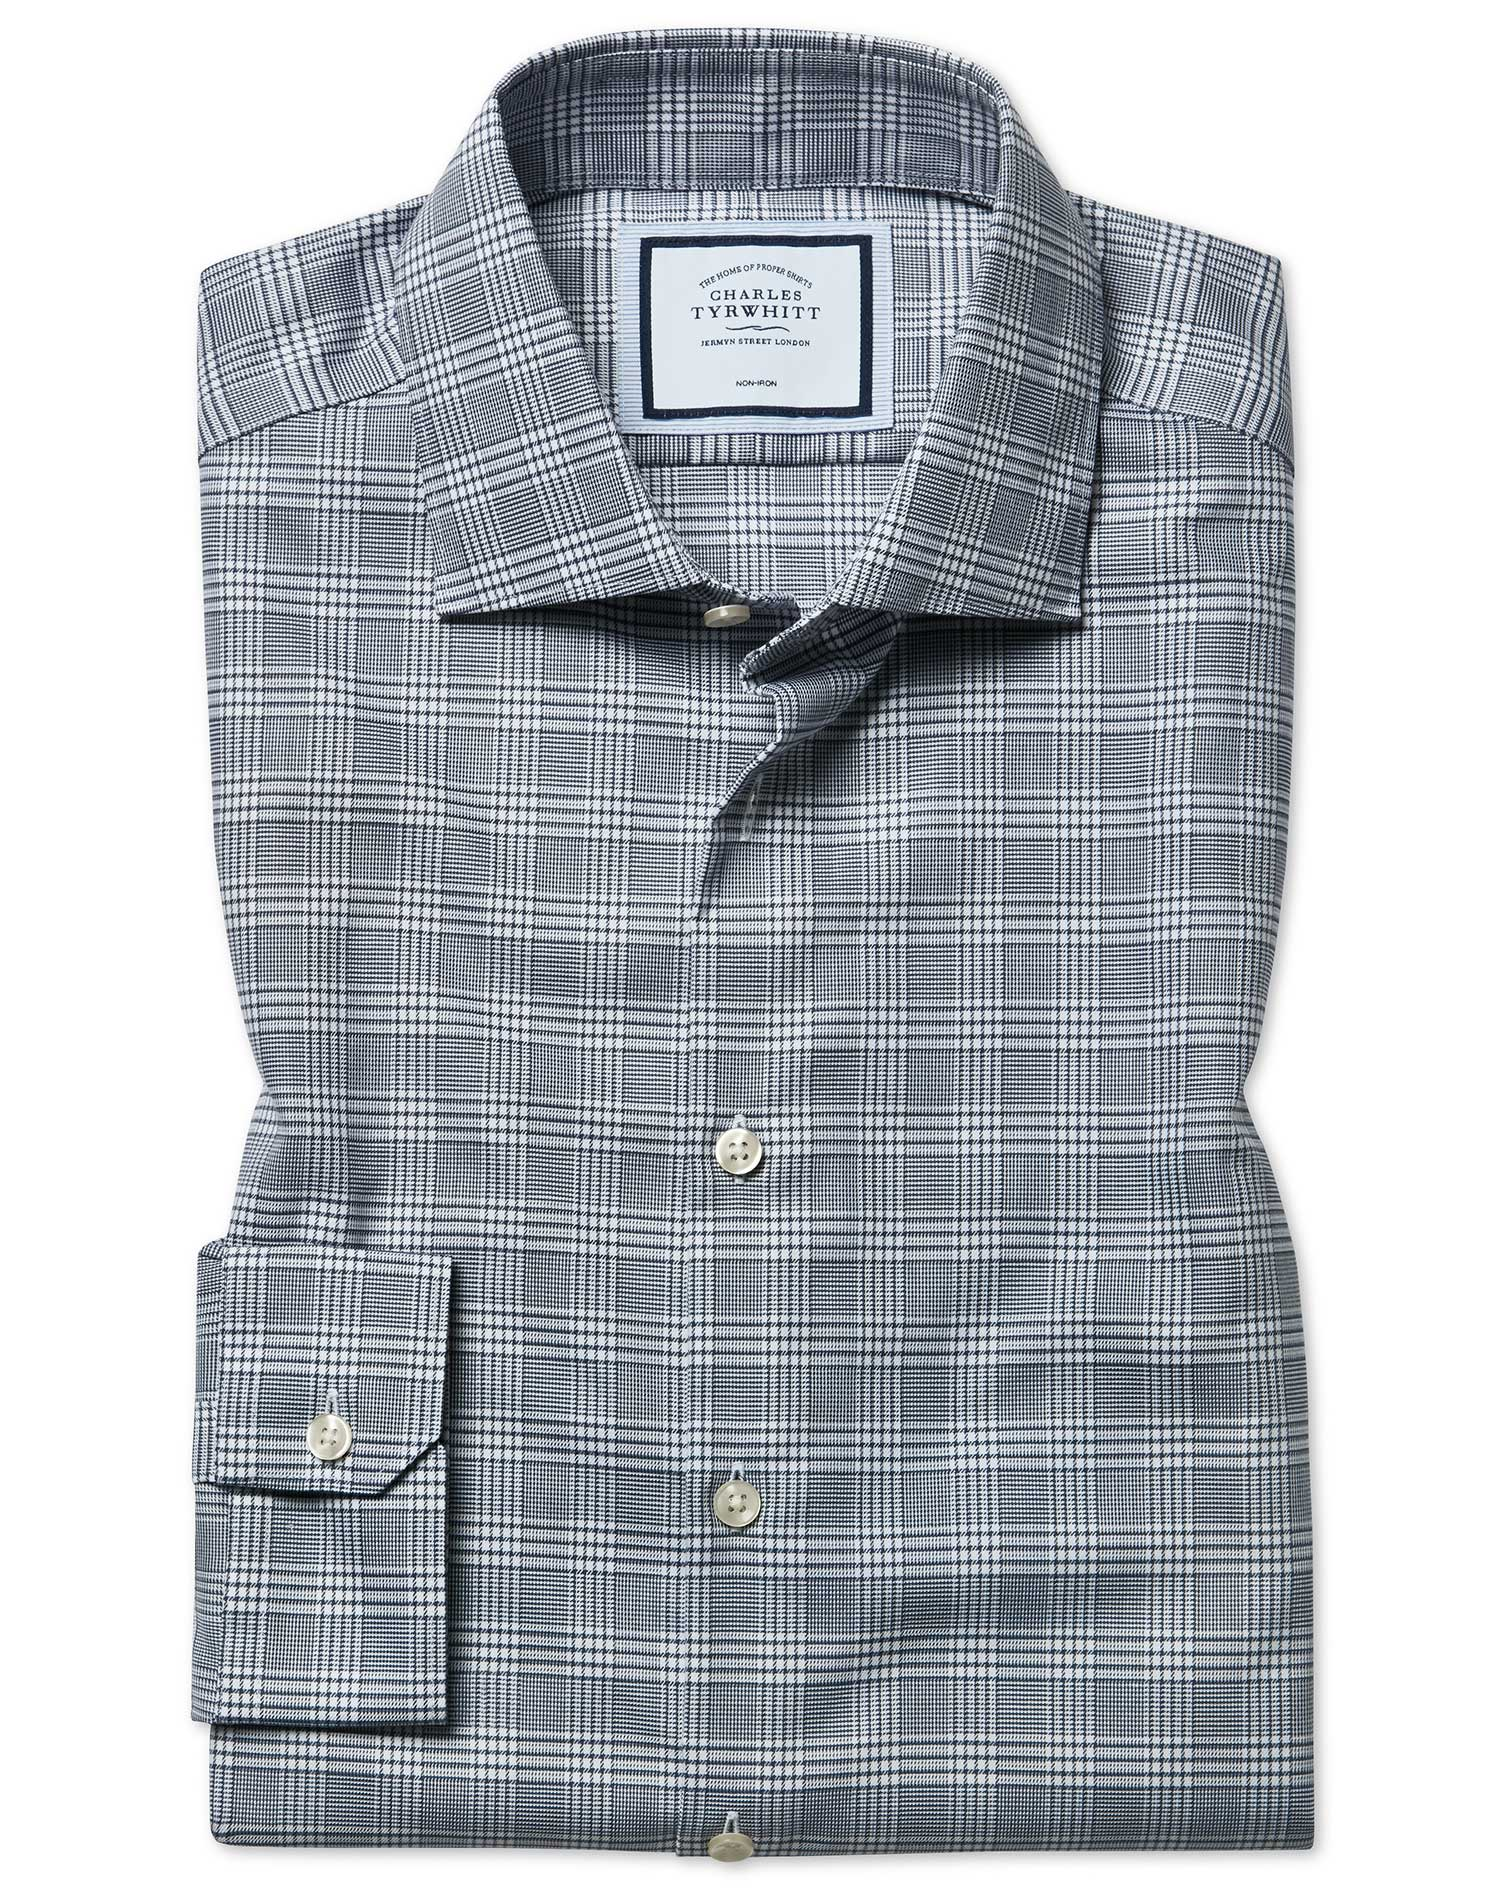 Super Slim Fit Non-Iron Natural Stretch Prince Of Wales Check Grey Cotton Formal Shirt Single Cuff S